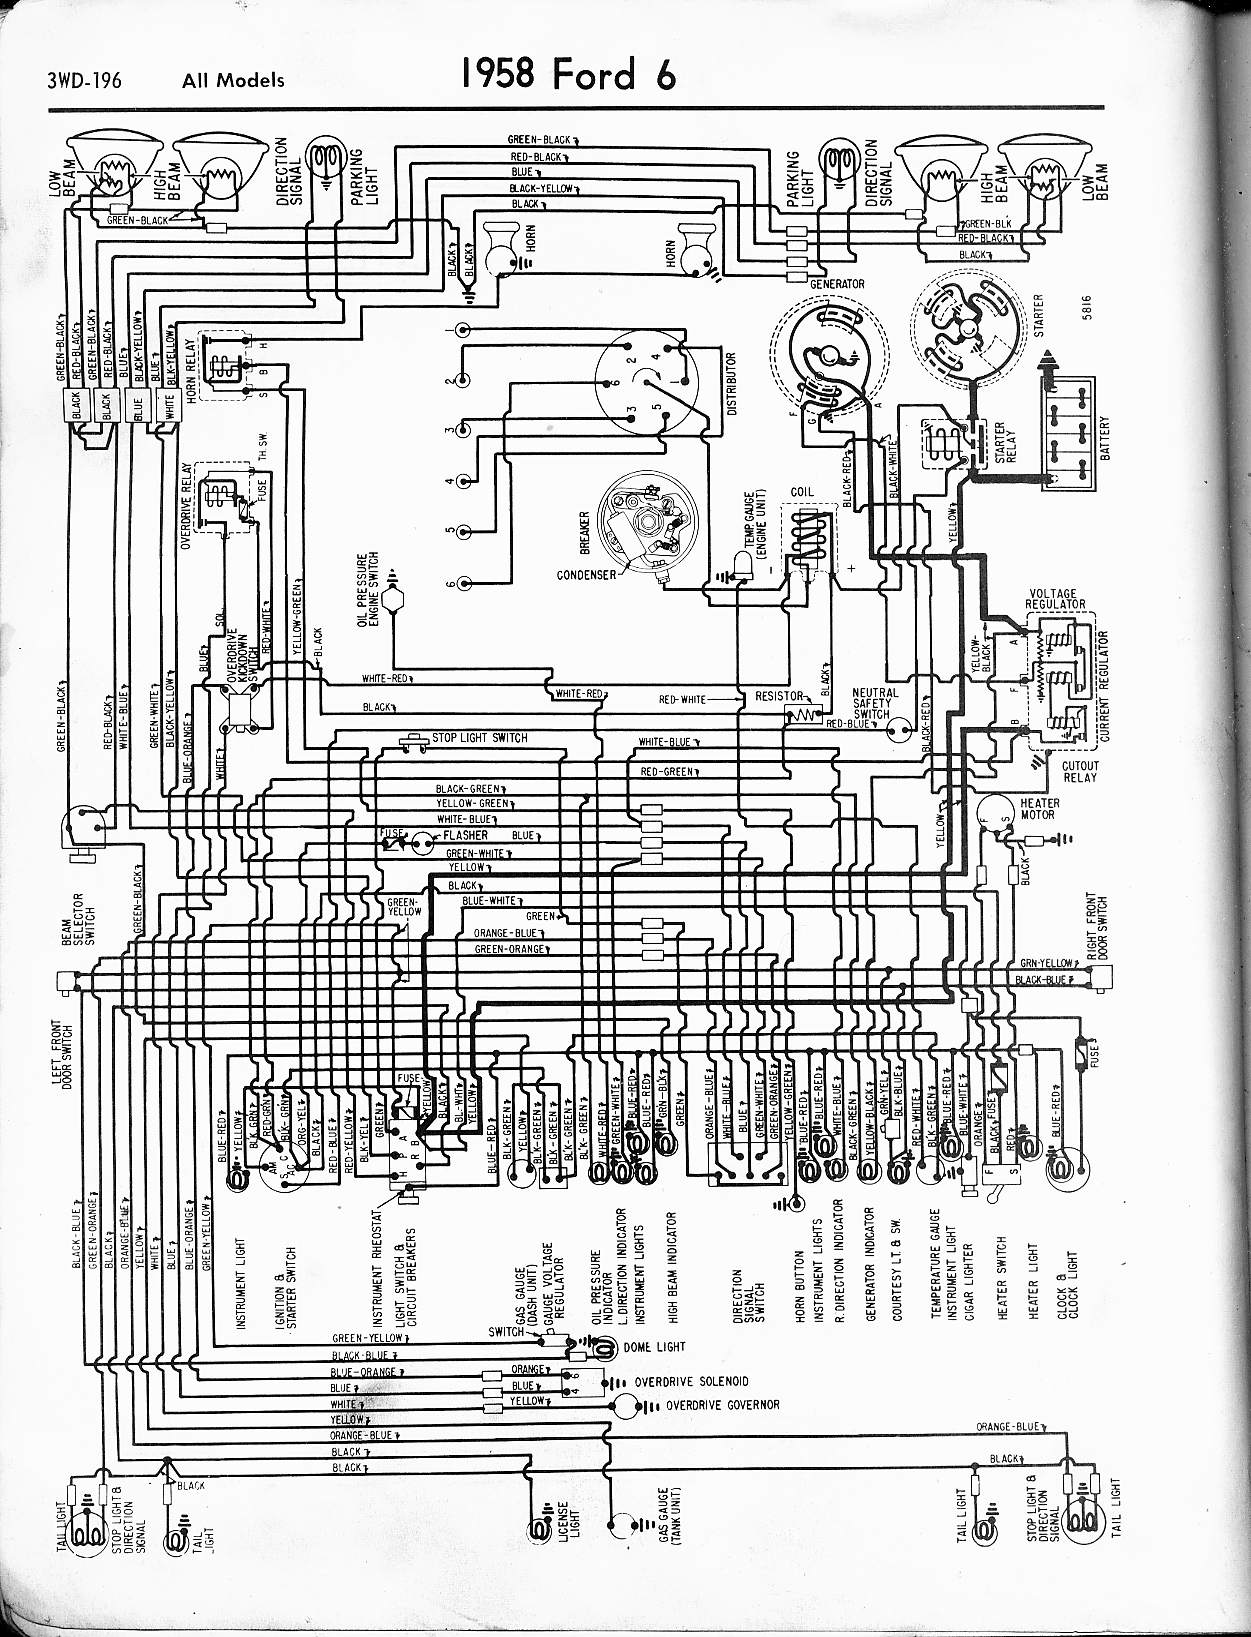 MWire5765 196 57 65 ford wiring diagrams 1986 ford f250 wiring diagram at readyjetset.co